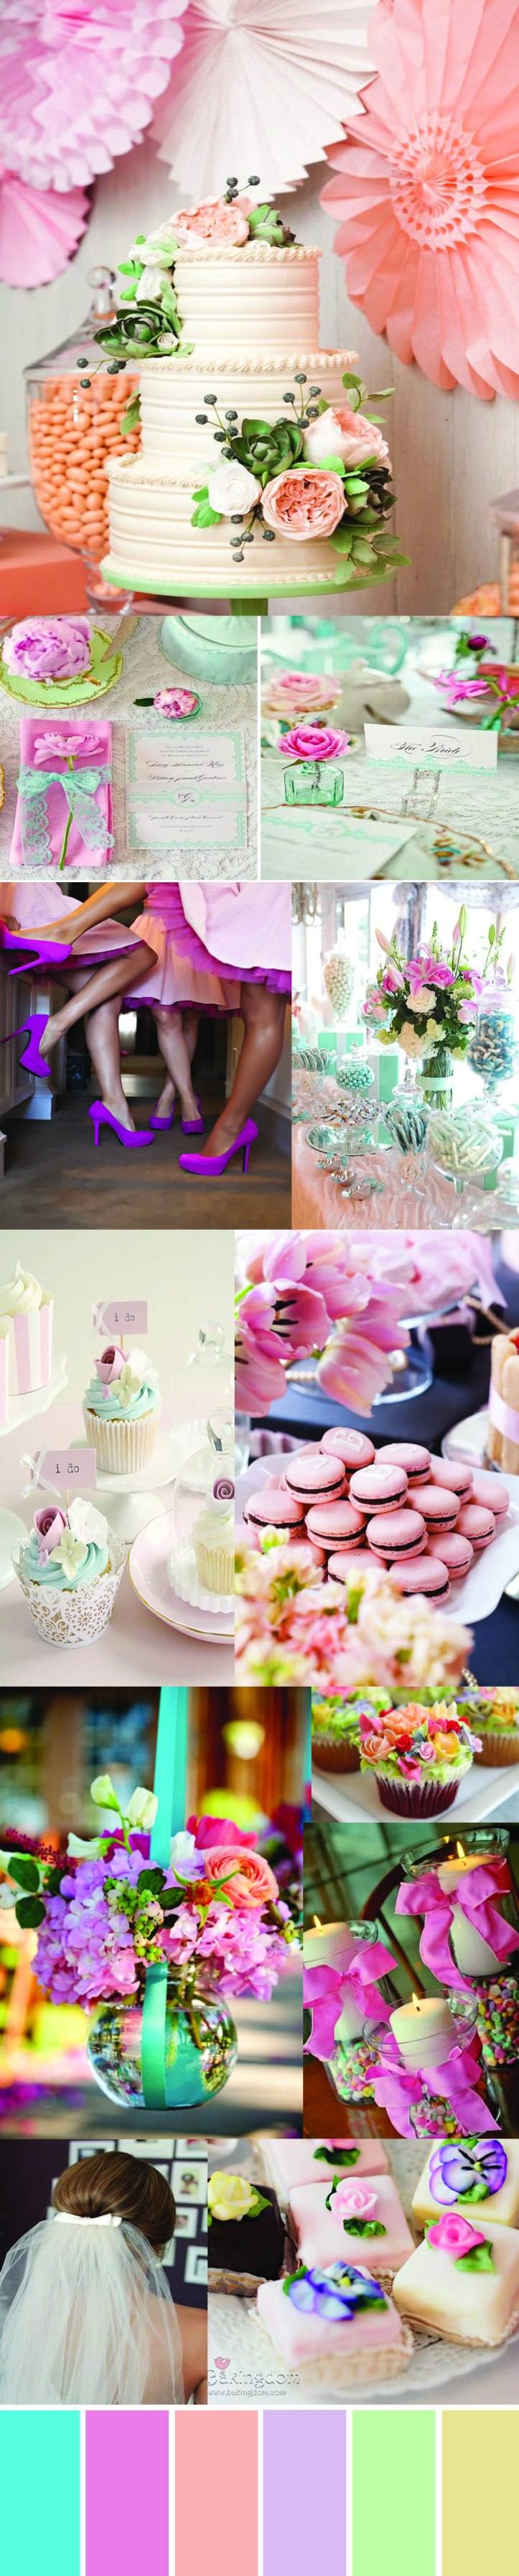 Easter Inspiration by True Romance Weddings